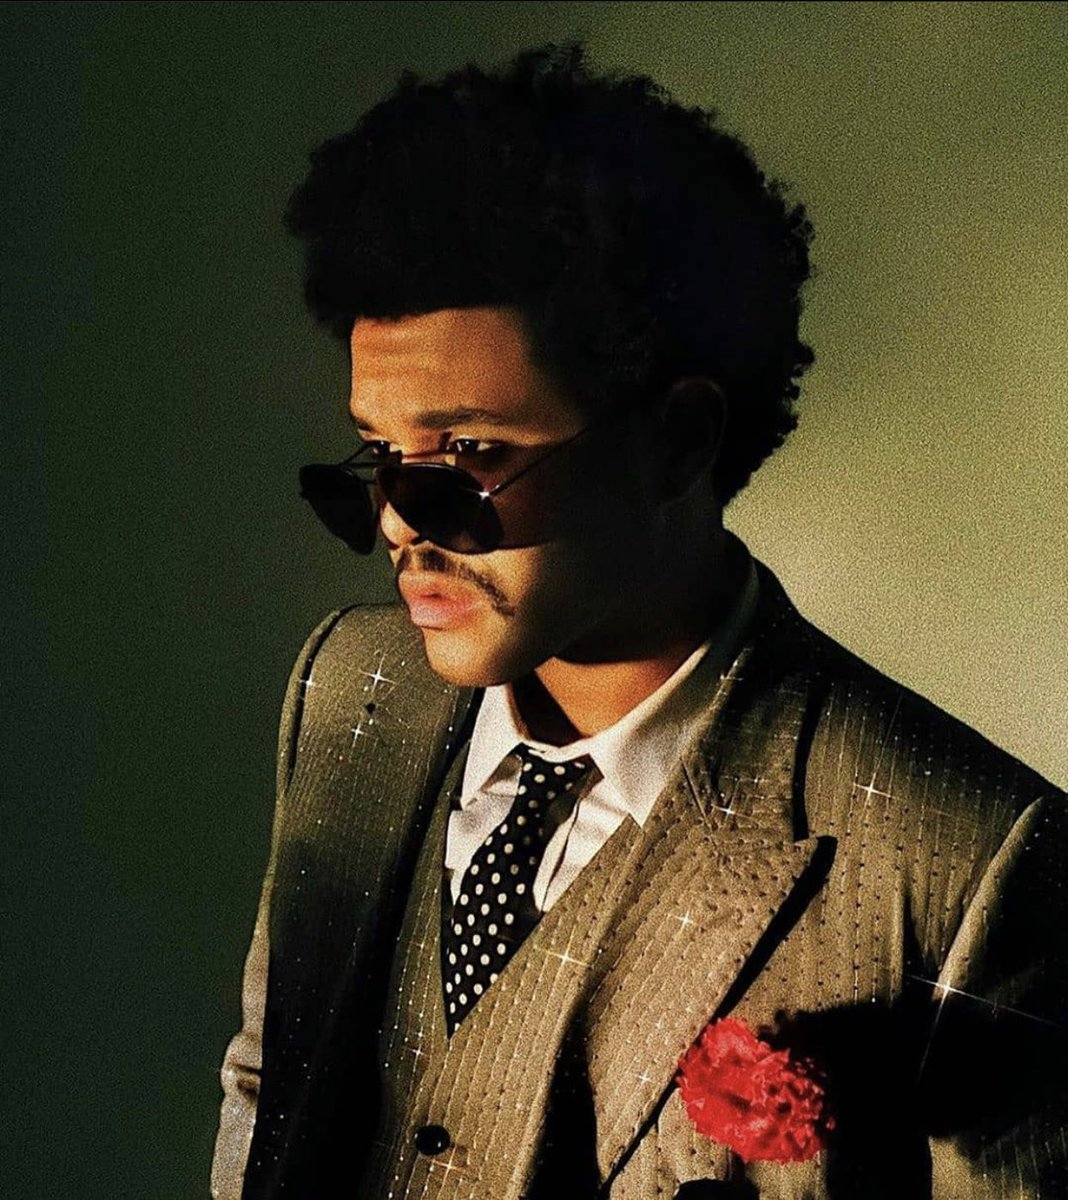 The Weeknd (@theweeknd) on Twitter photo 22/05/2020 04:19:10